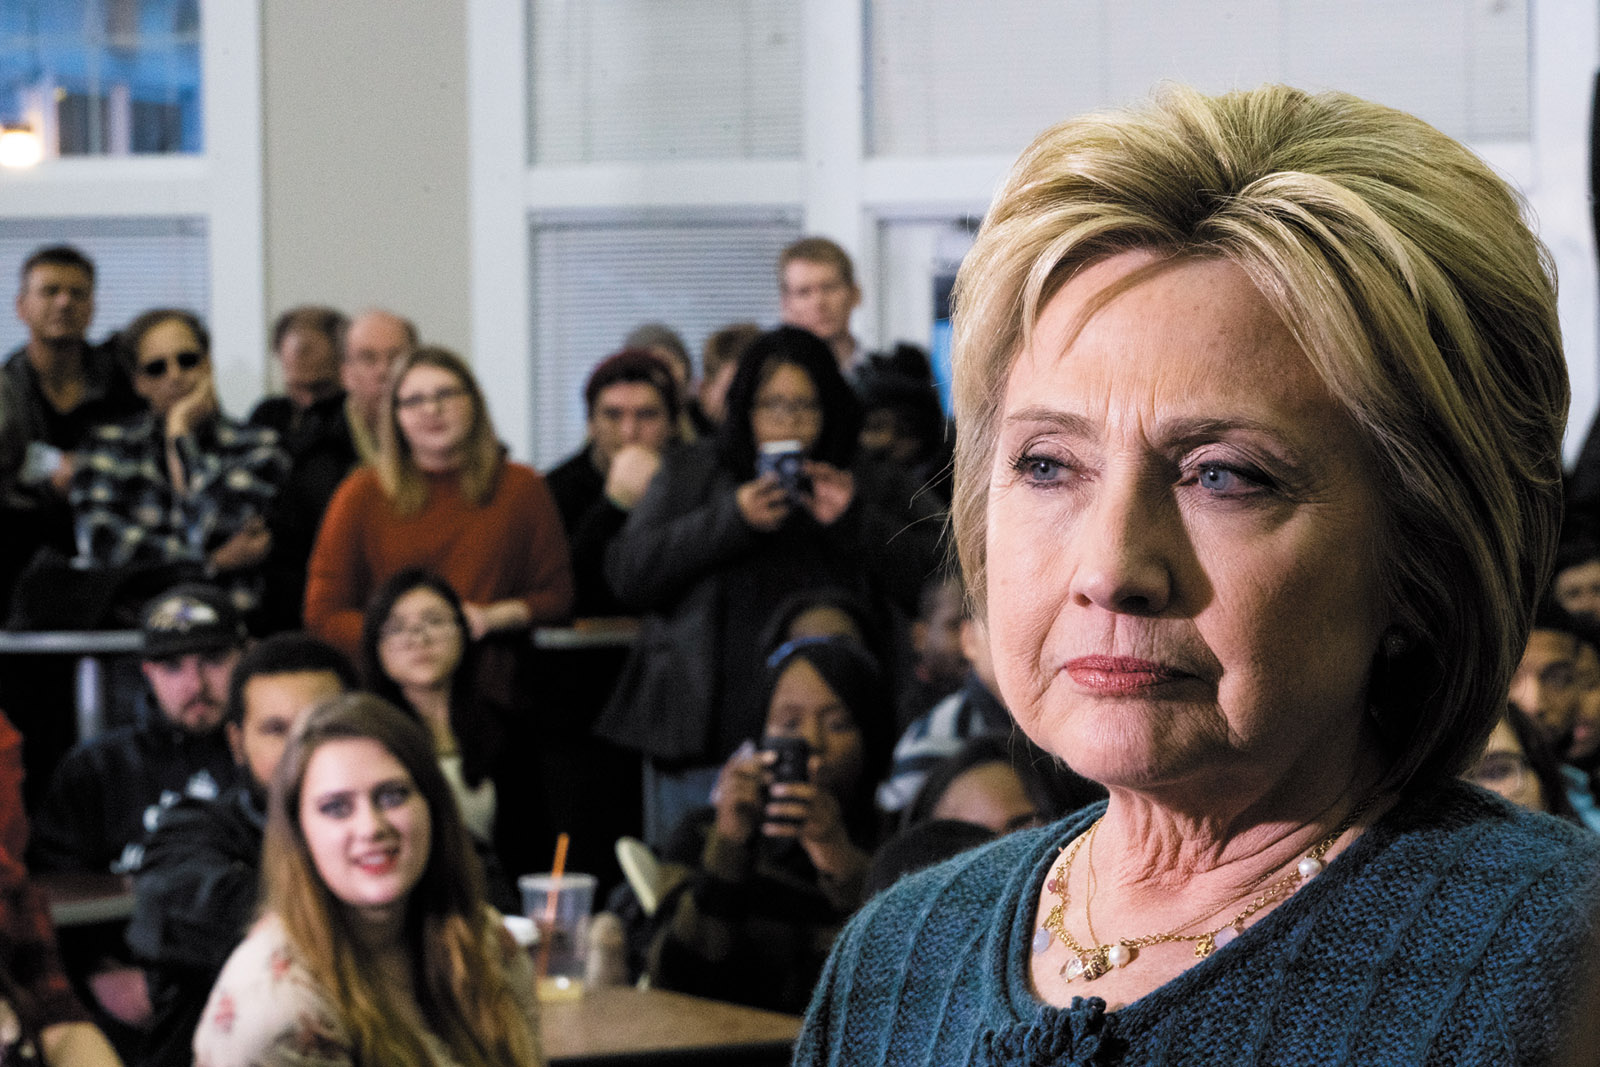 Hillary Clinton at New England College in Henniker, New Hampshire, before the state primary, February 2016